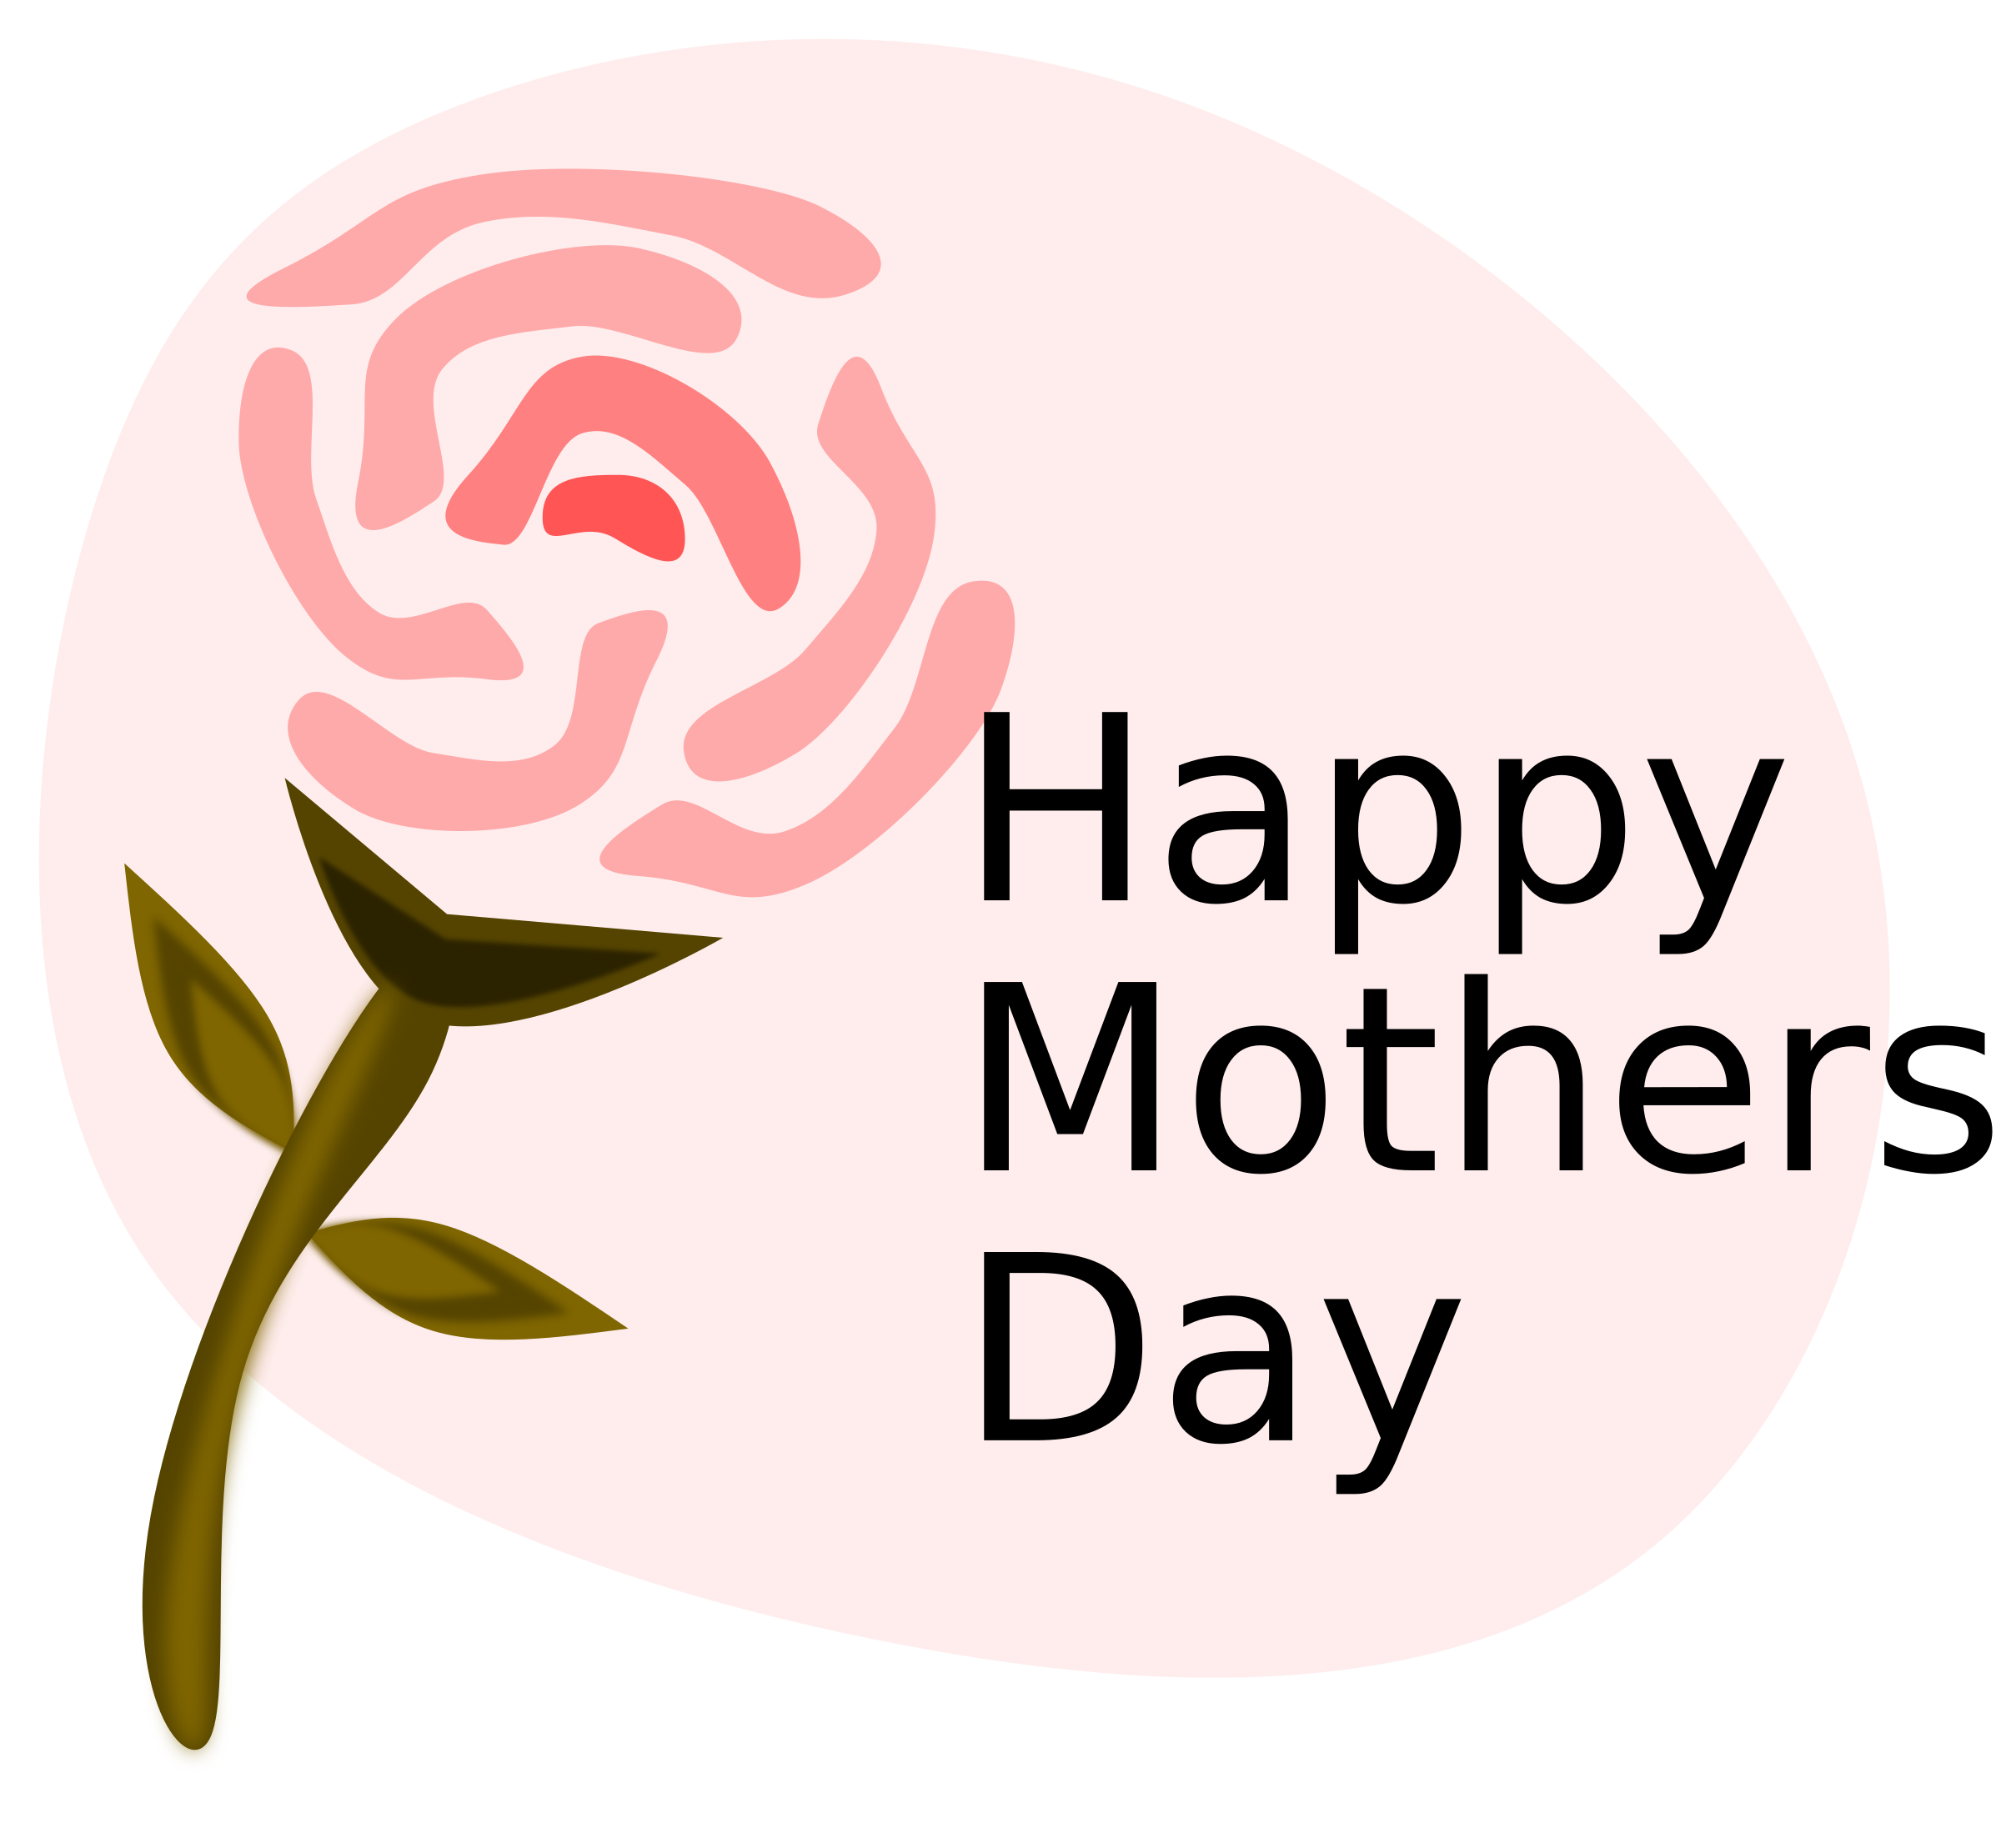 image free download Happy mothers day clipart. Big image png